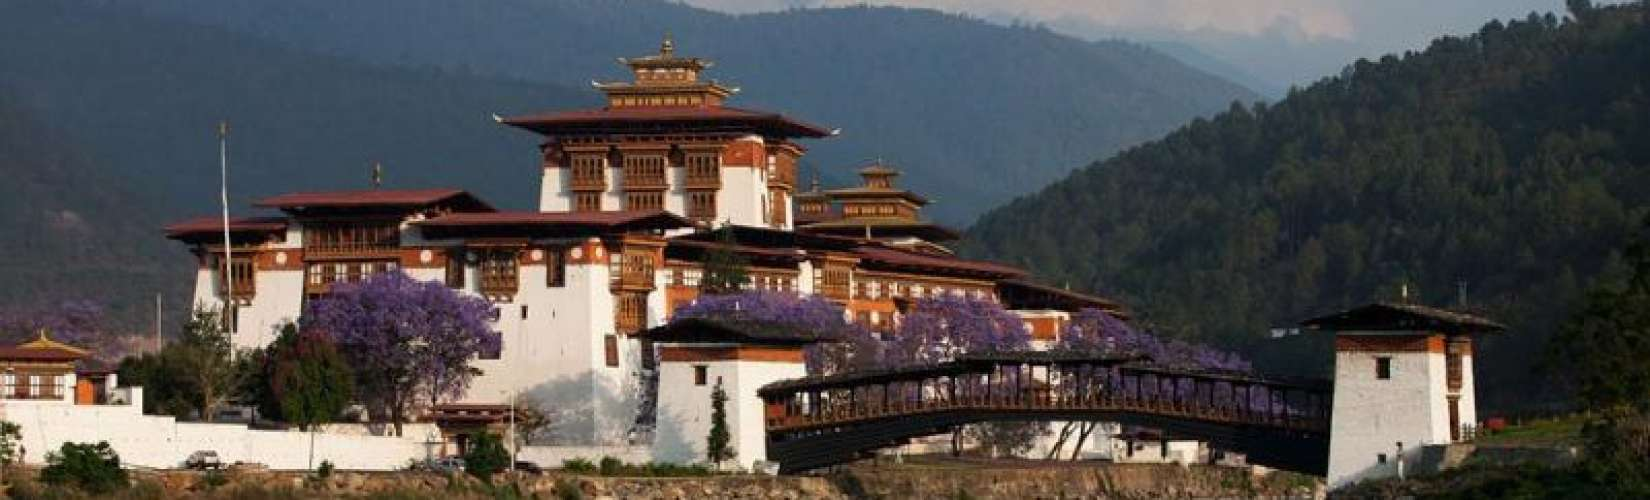 Best places to Visit in Bhutan